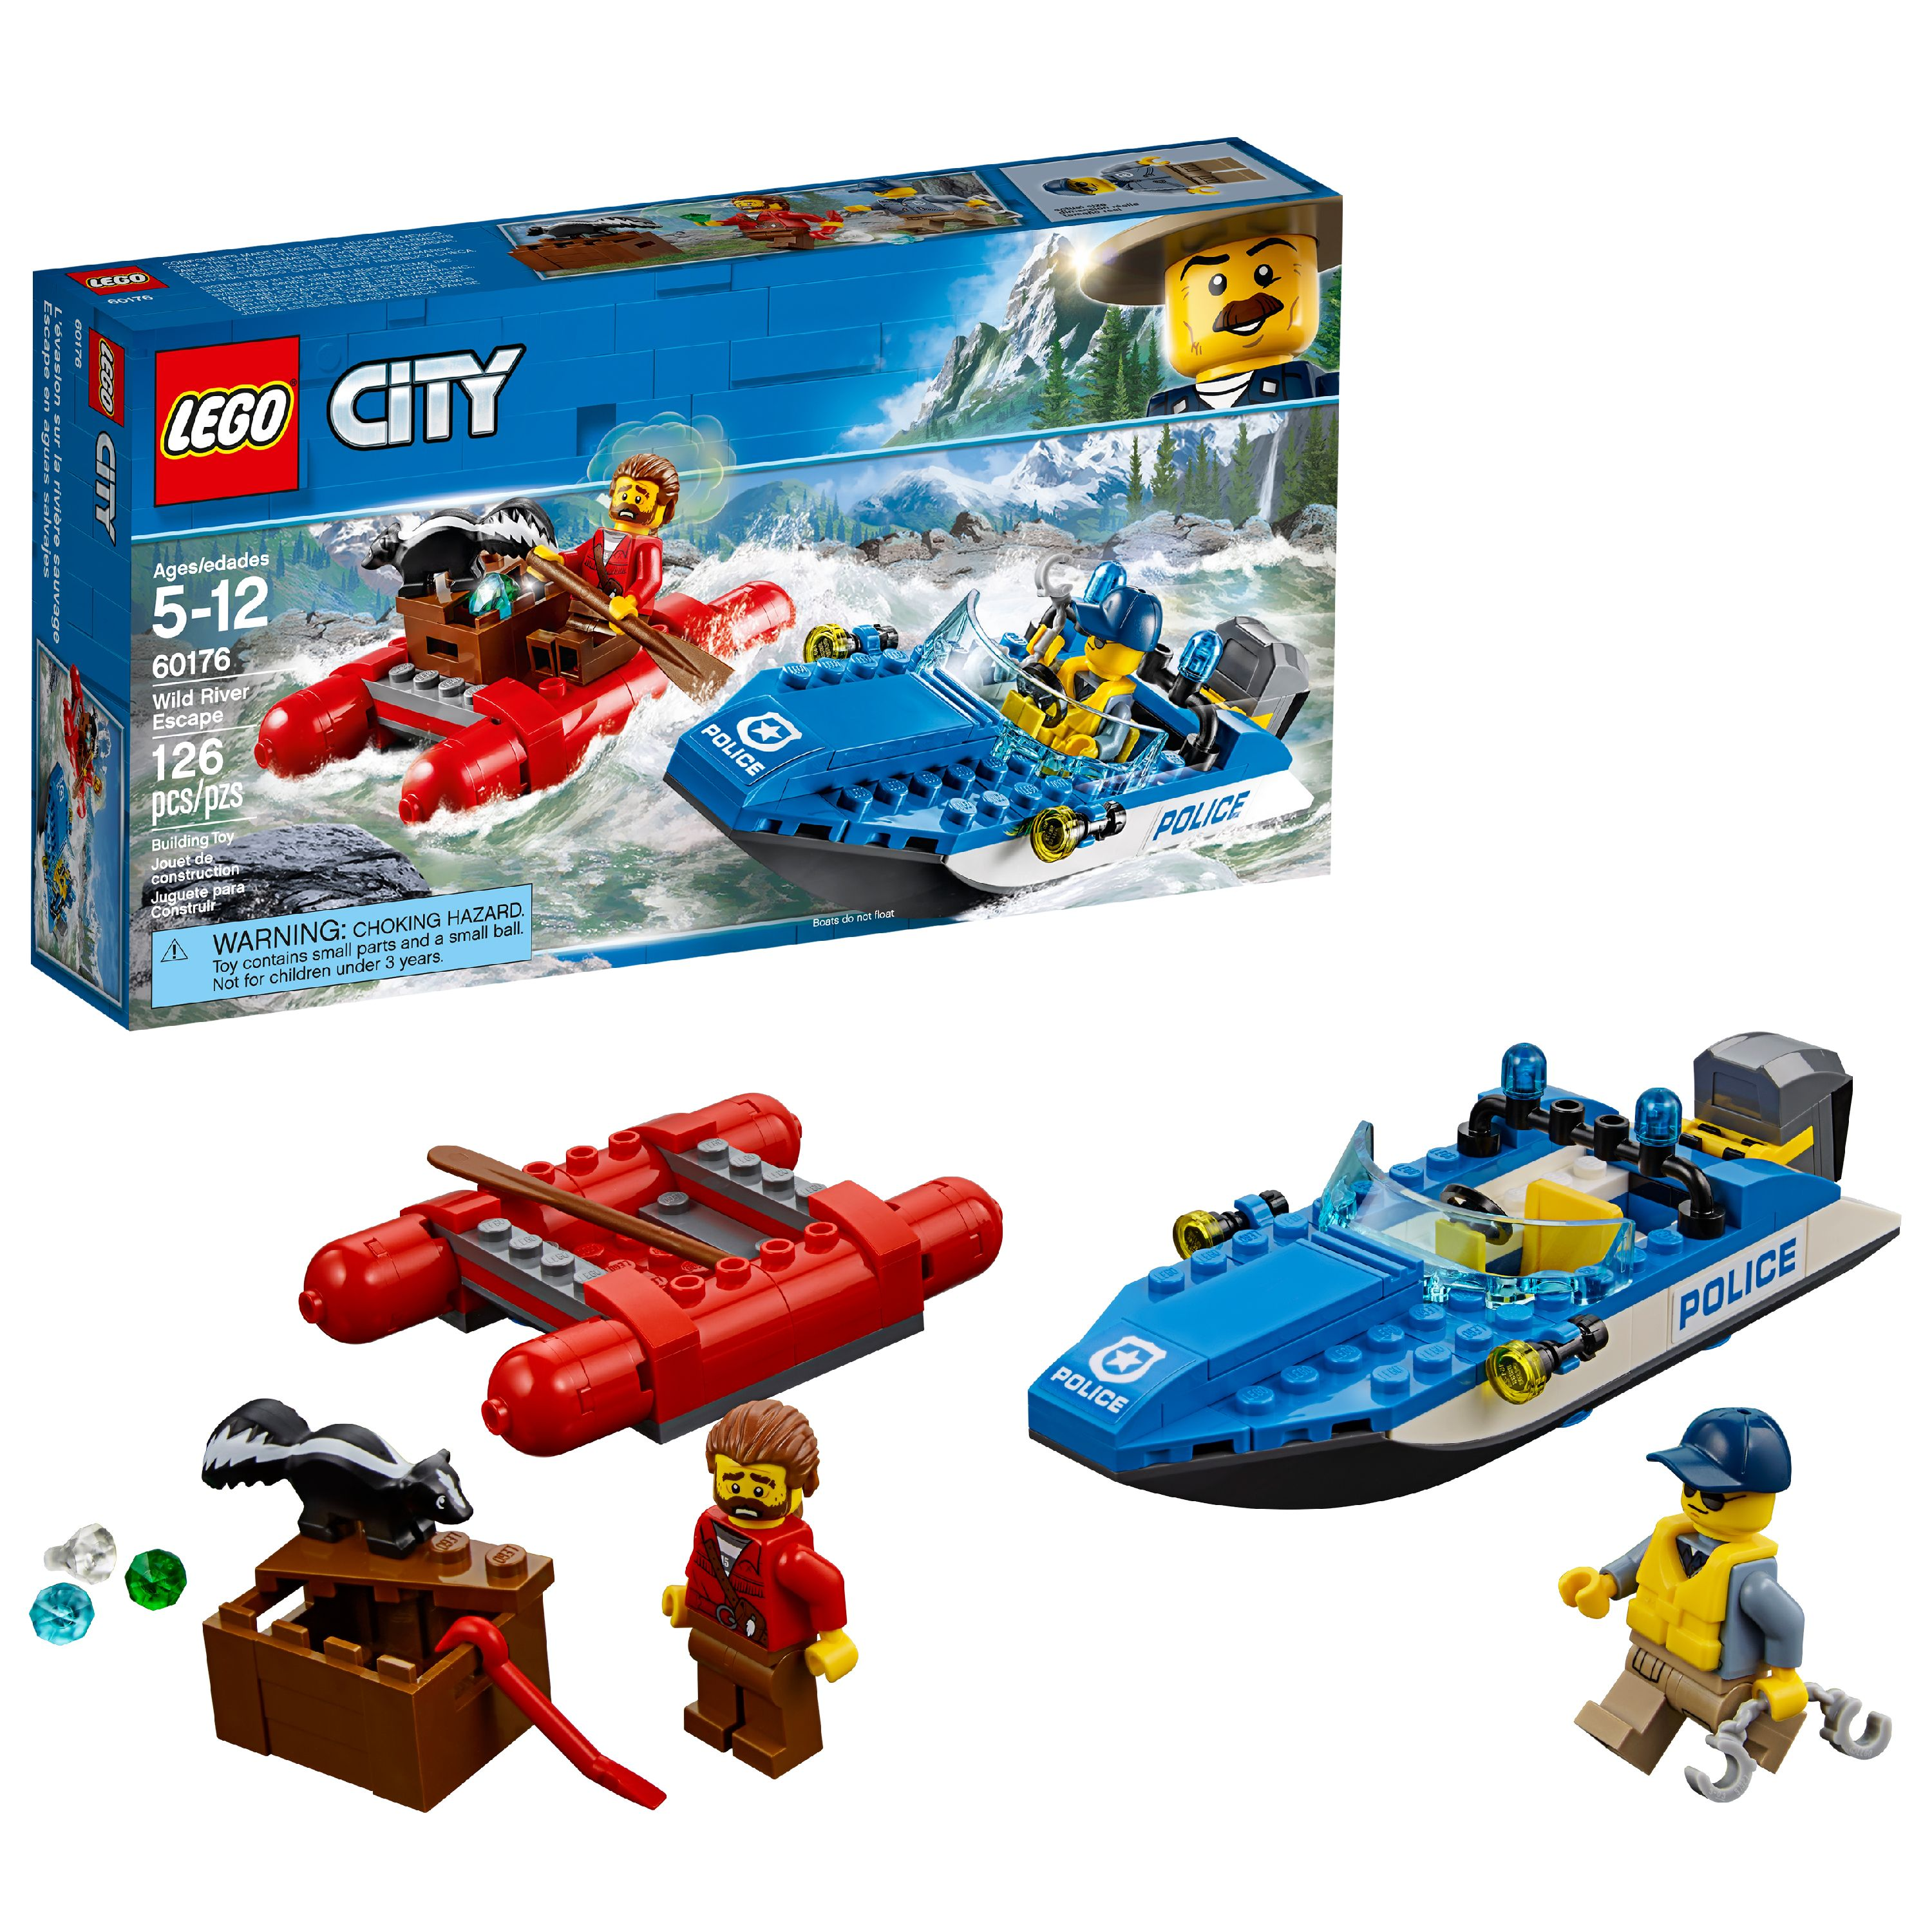 LEGO City Wild River Escape 60176 Building Set (126 Pieces)